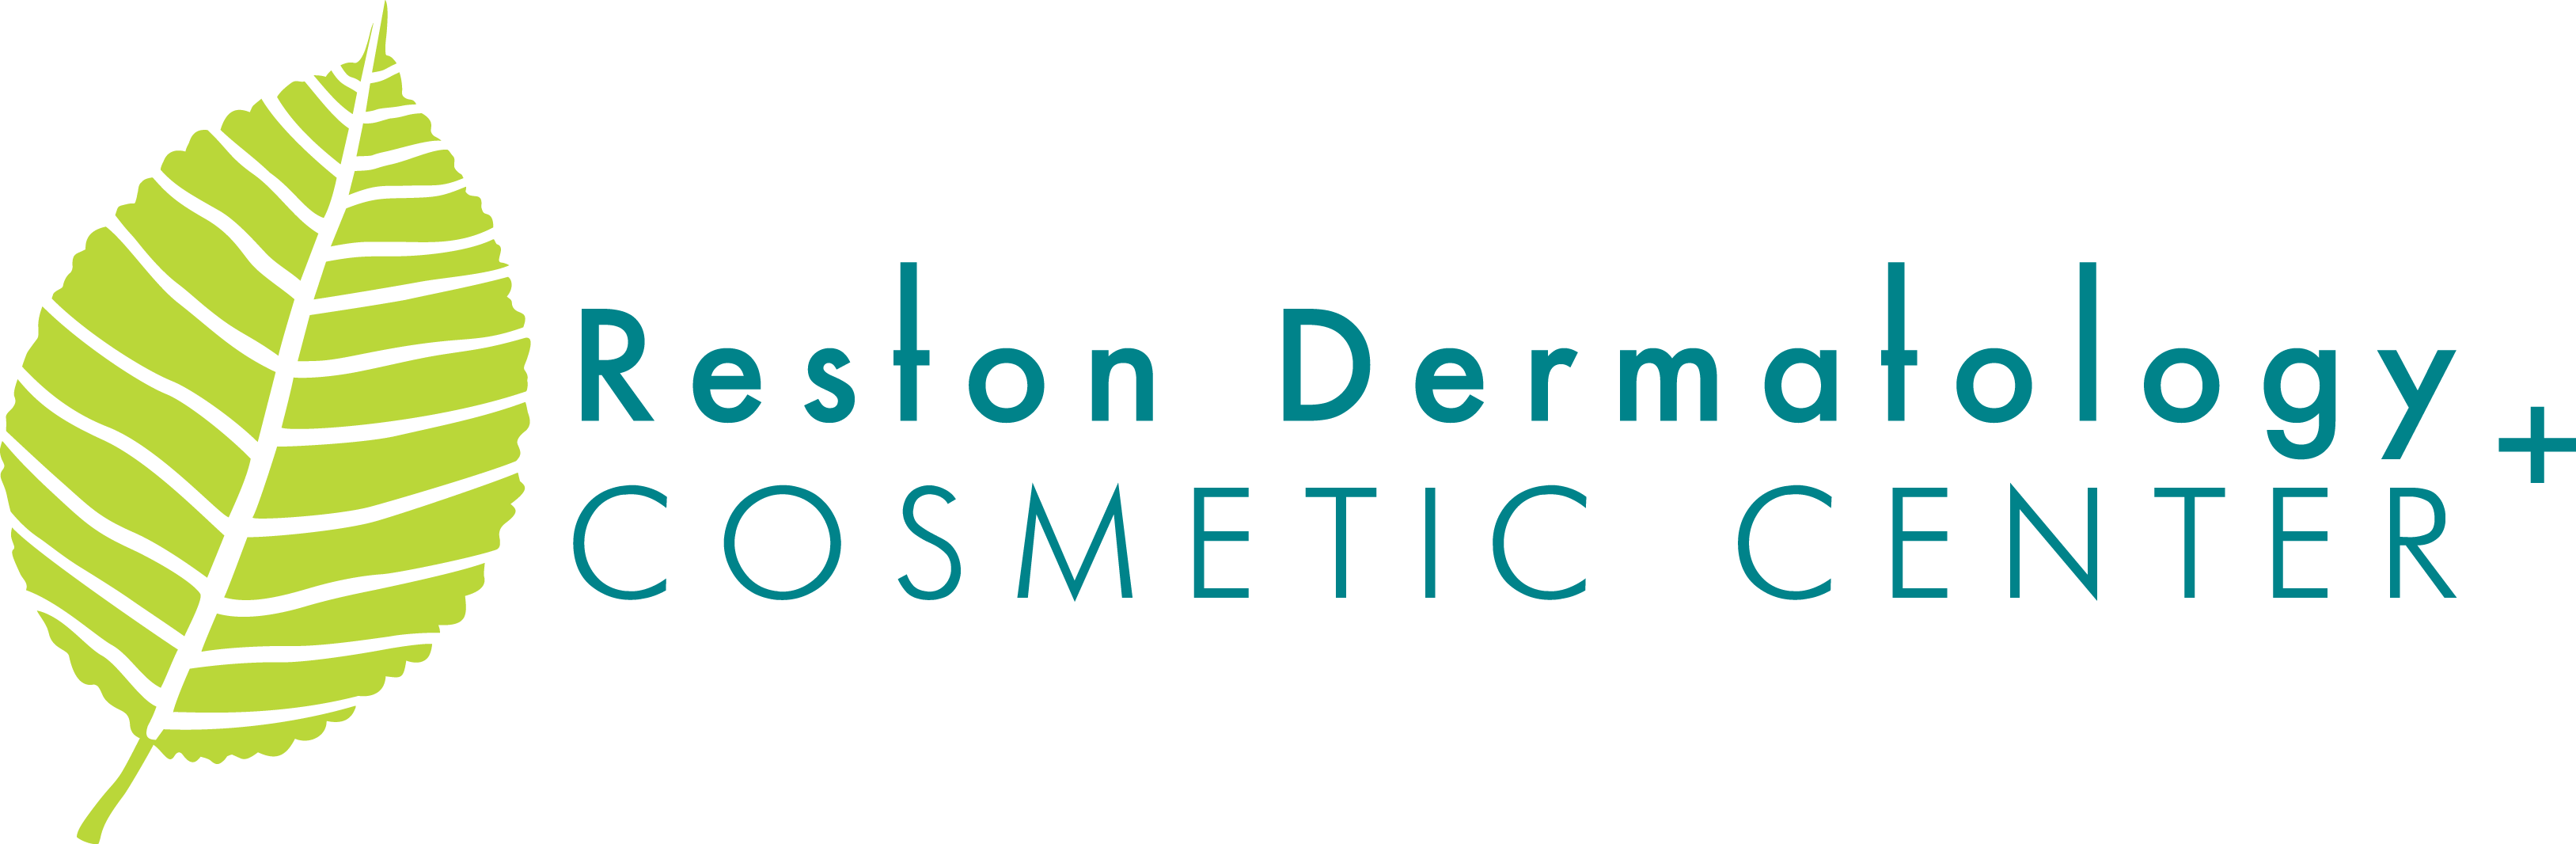 Reston Dermatology + Cosmetic Center